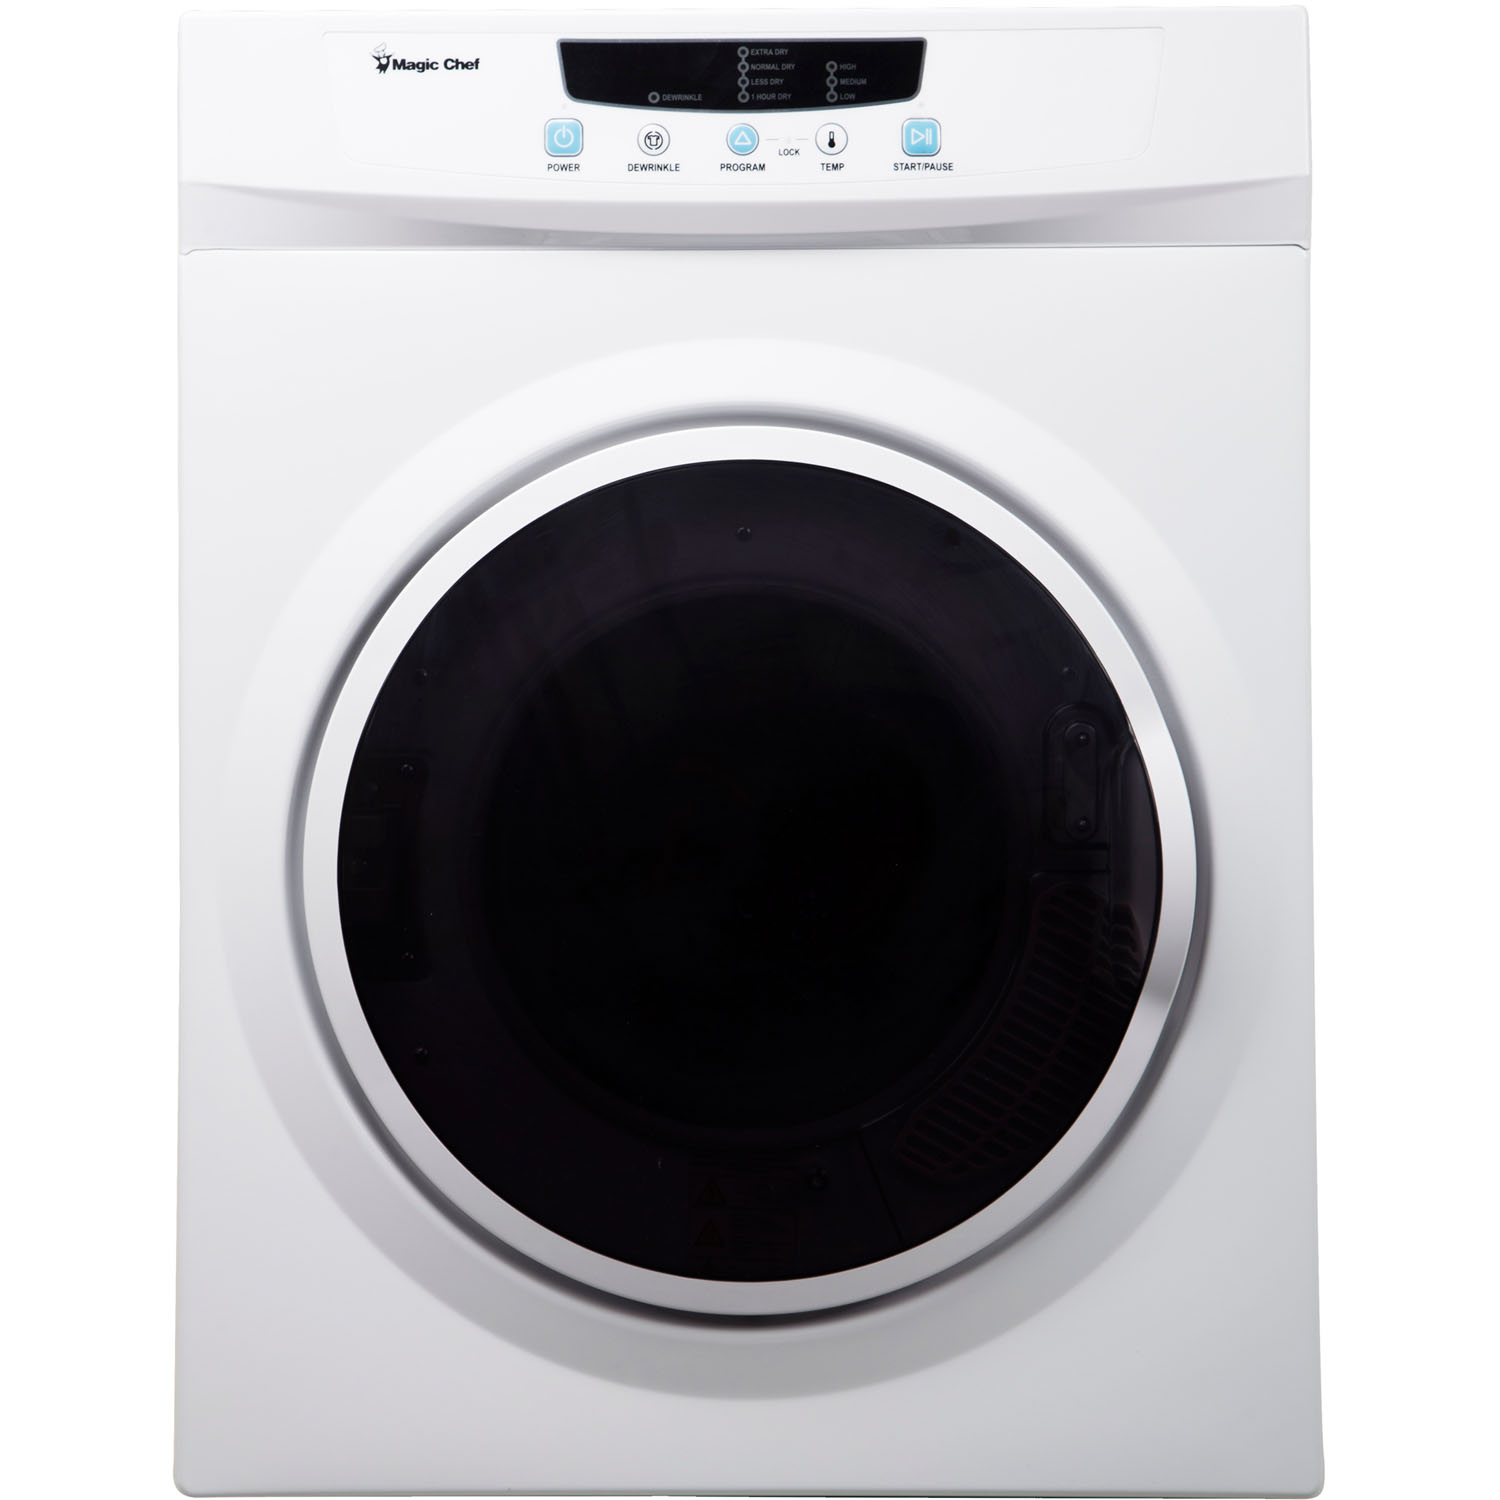 Magic Chef 3.5 Cu. Ft. Compact Electric Dryer in White